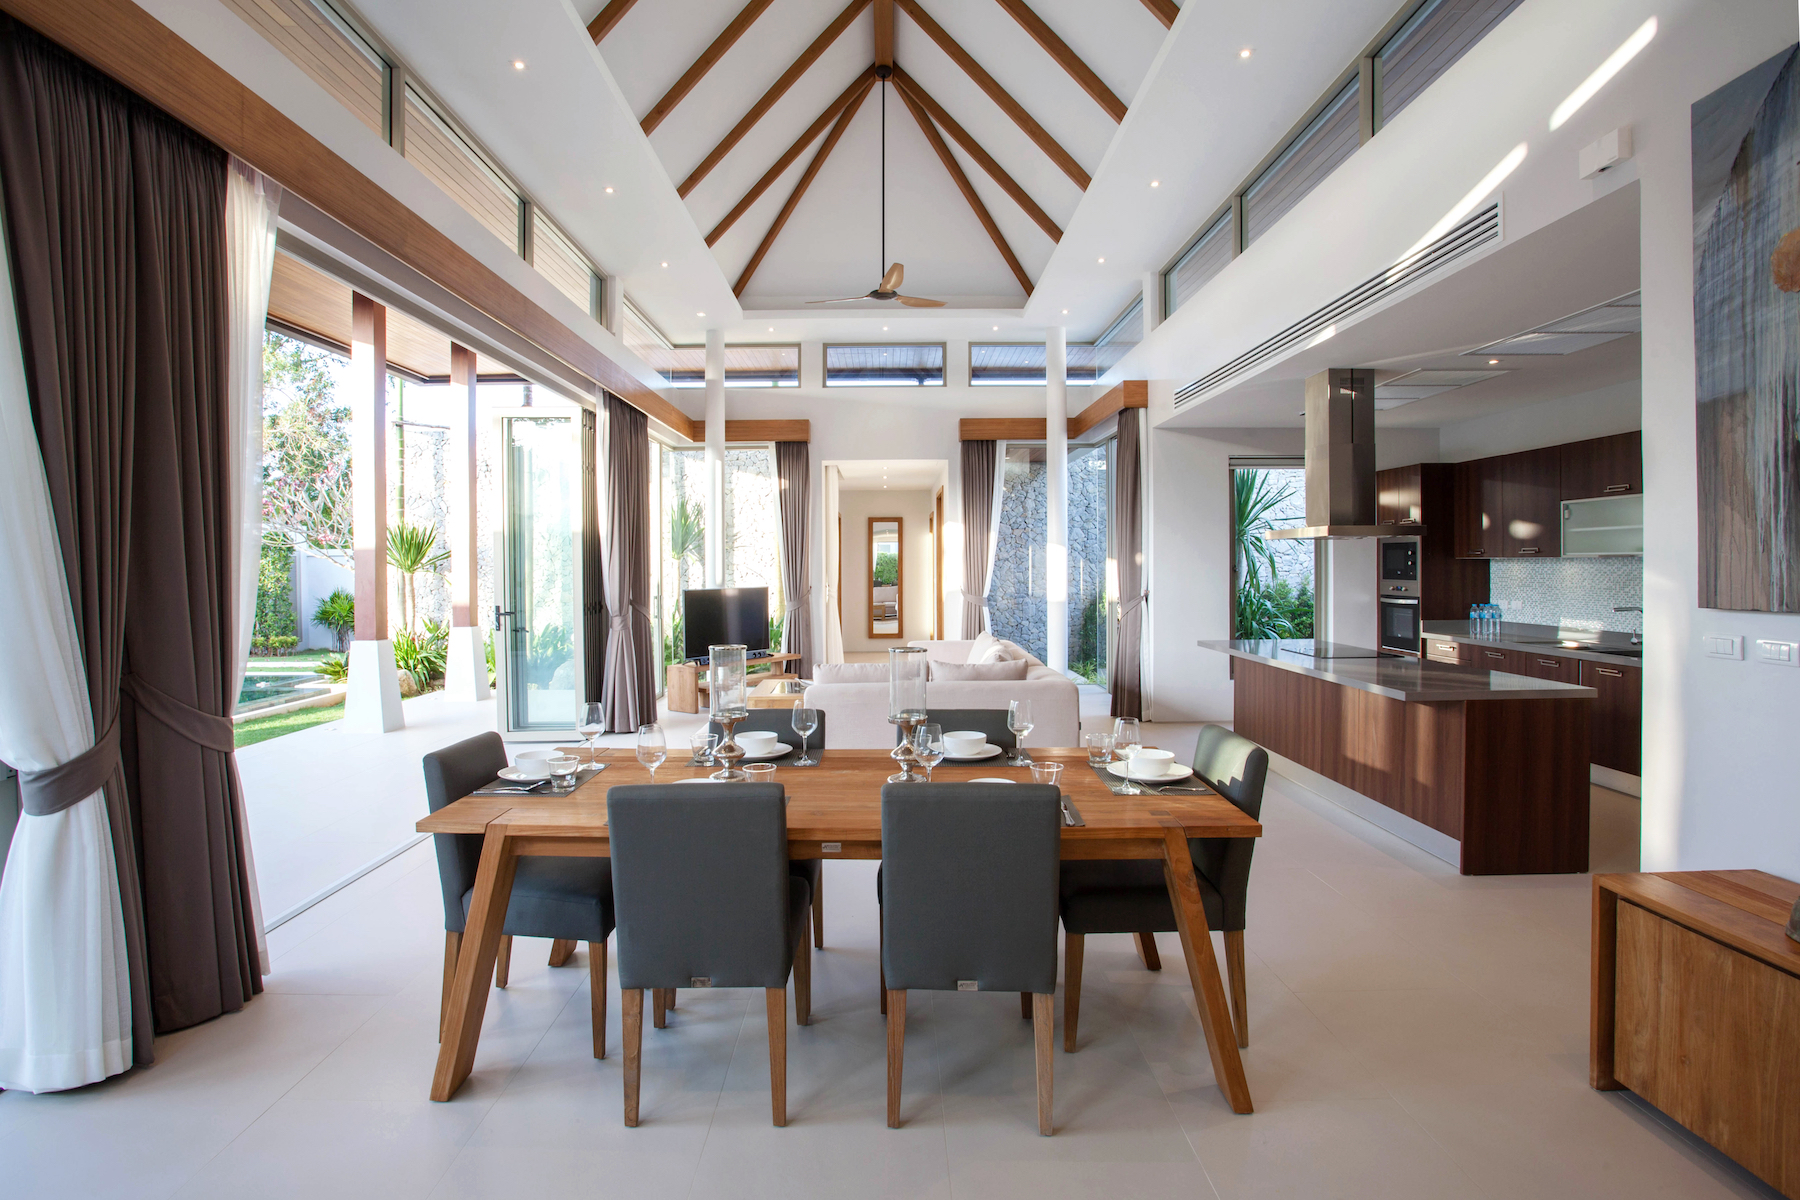 Luxury interior design in living room of pool villas. Airy and bright space with high raised ceiling and wooden dining table home, house , building , hotel, resort